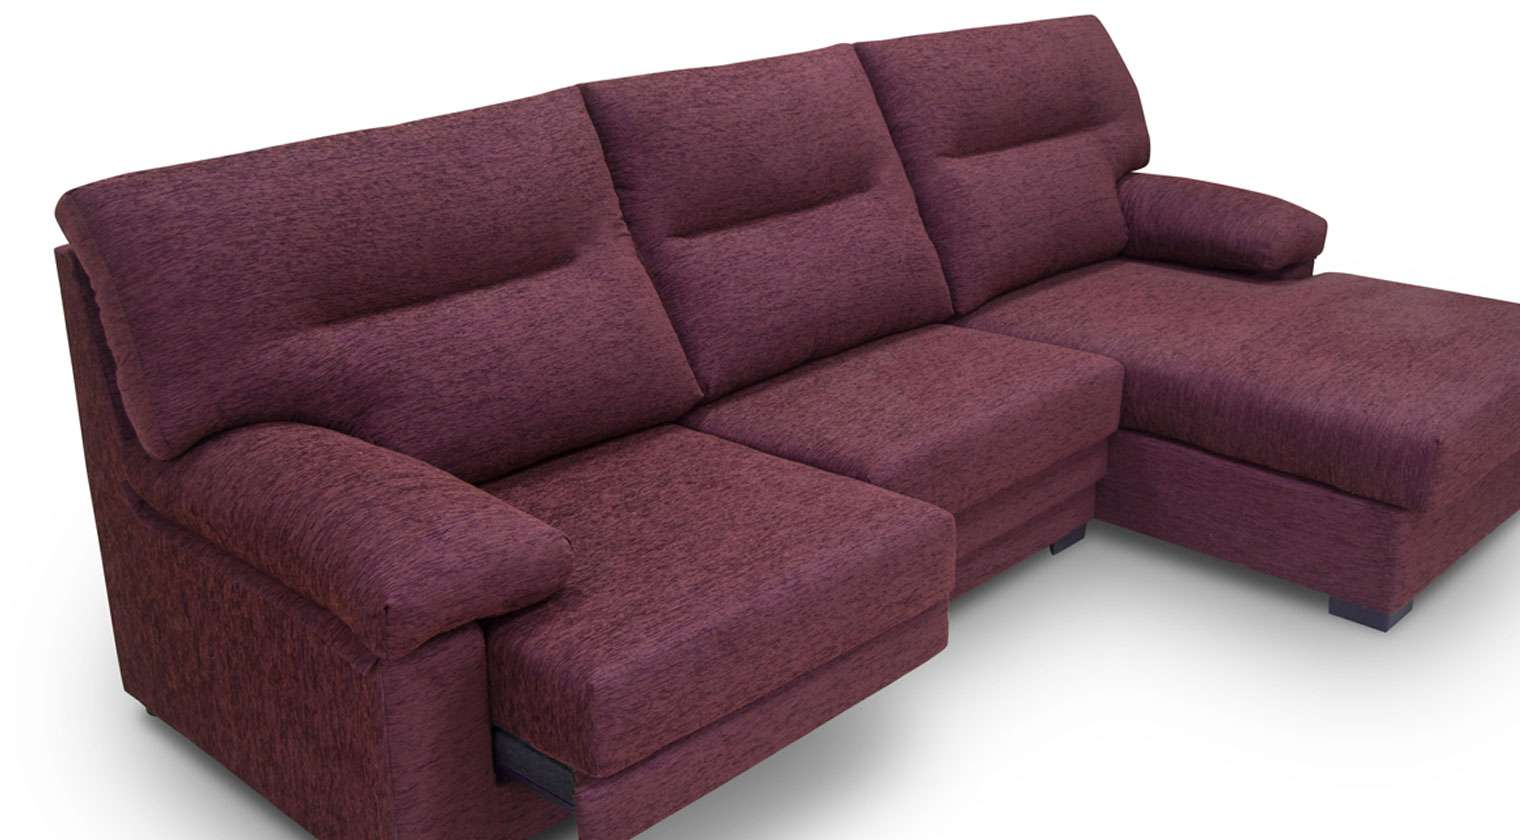 Comprar chaise longue tela ceres mod 3 5 plazas chaise for Sofas baratos asturias